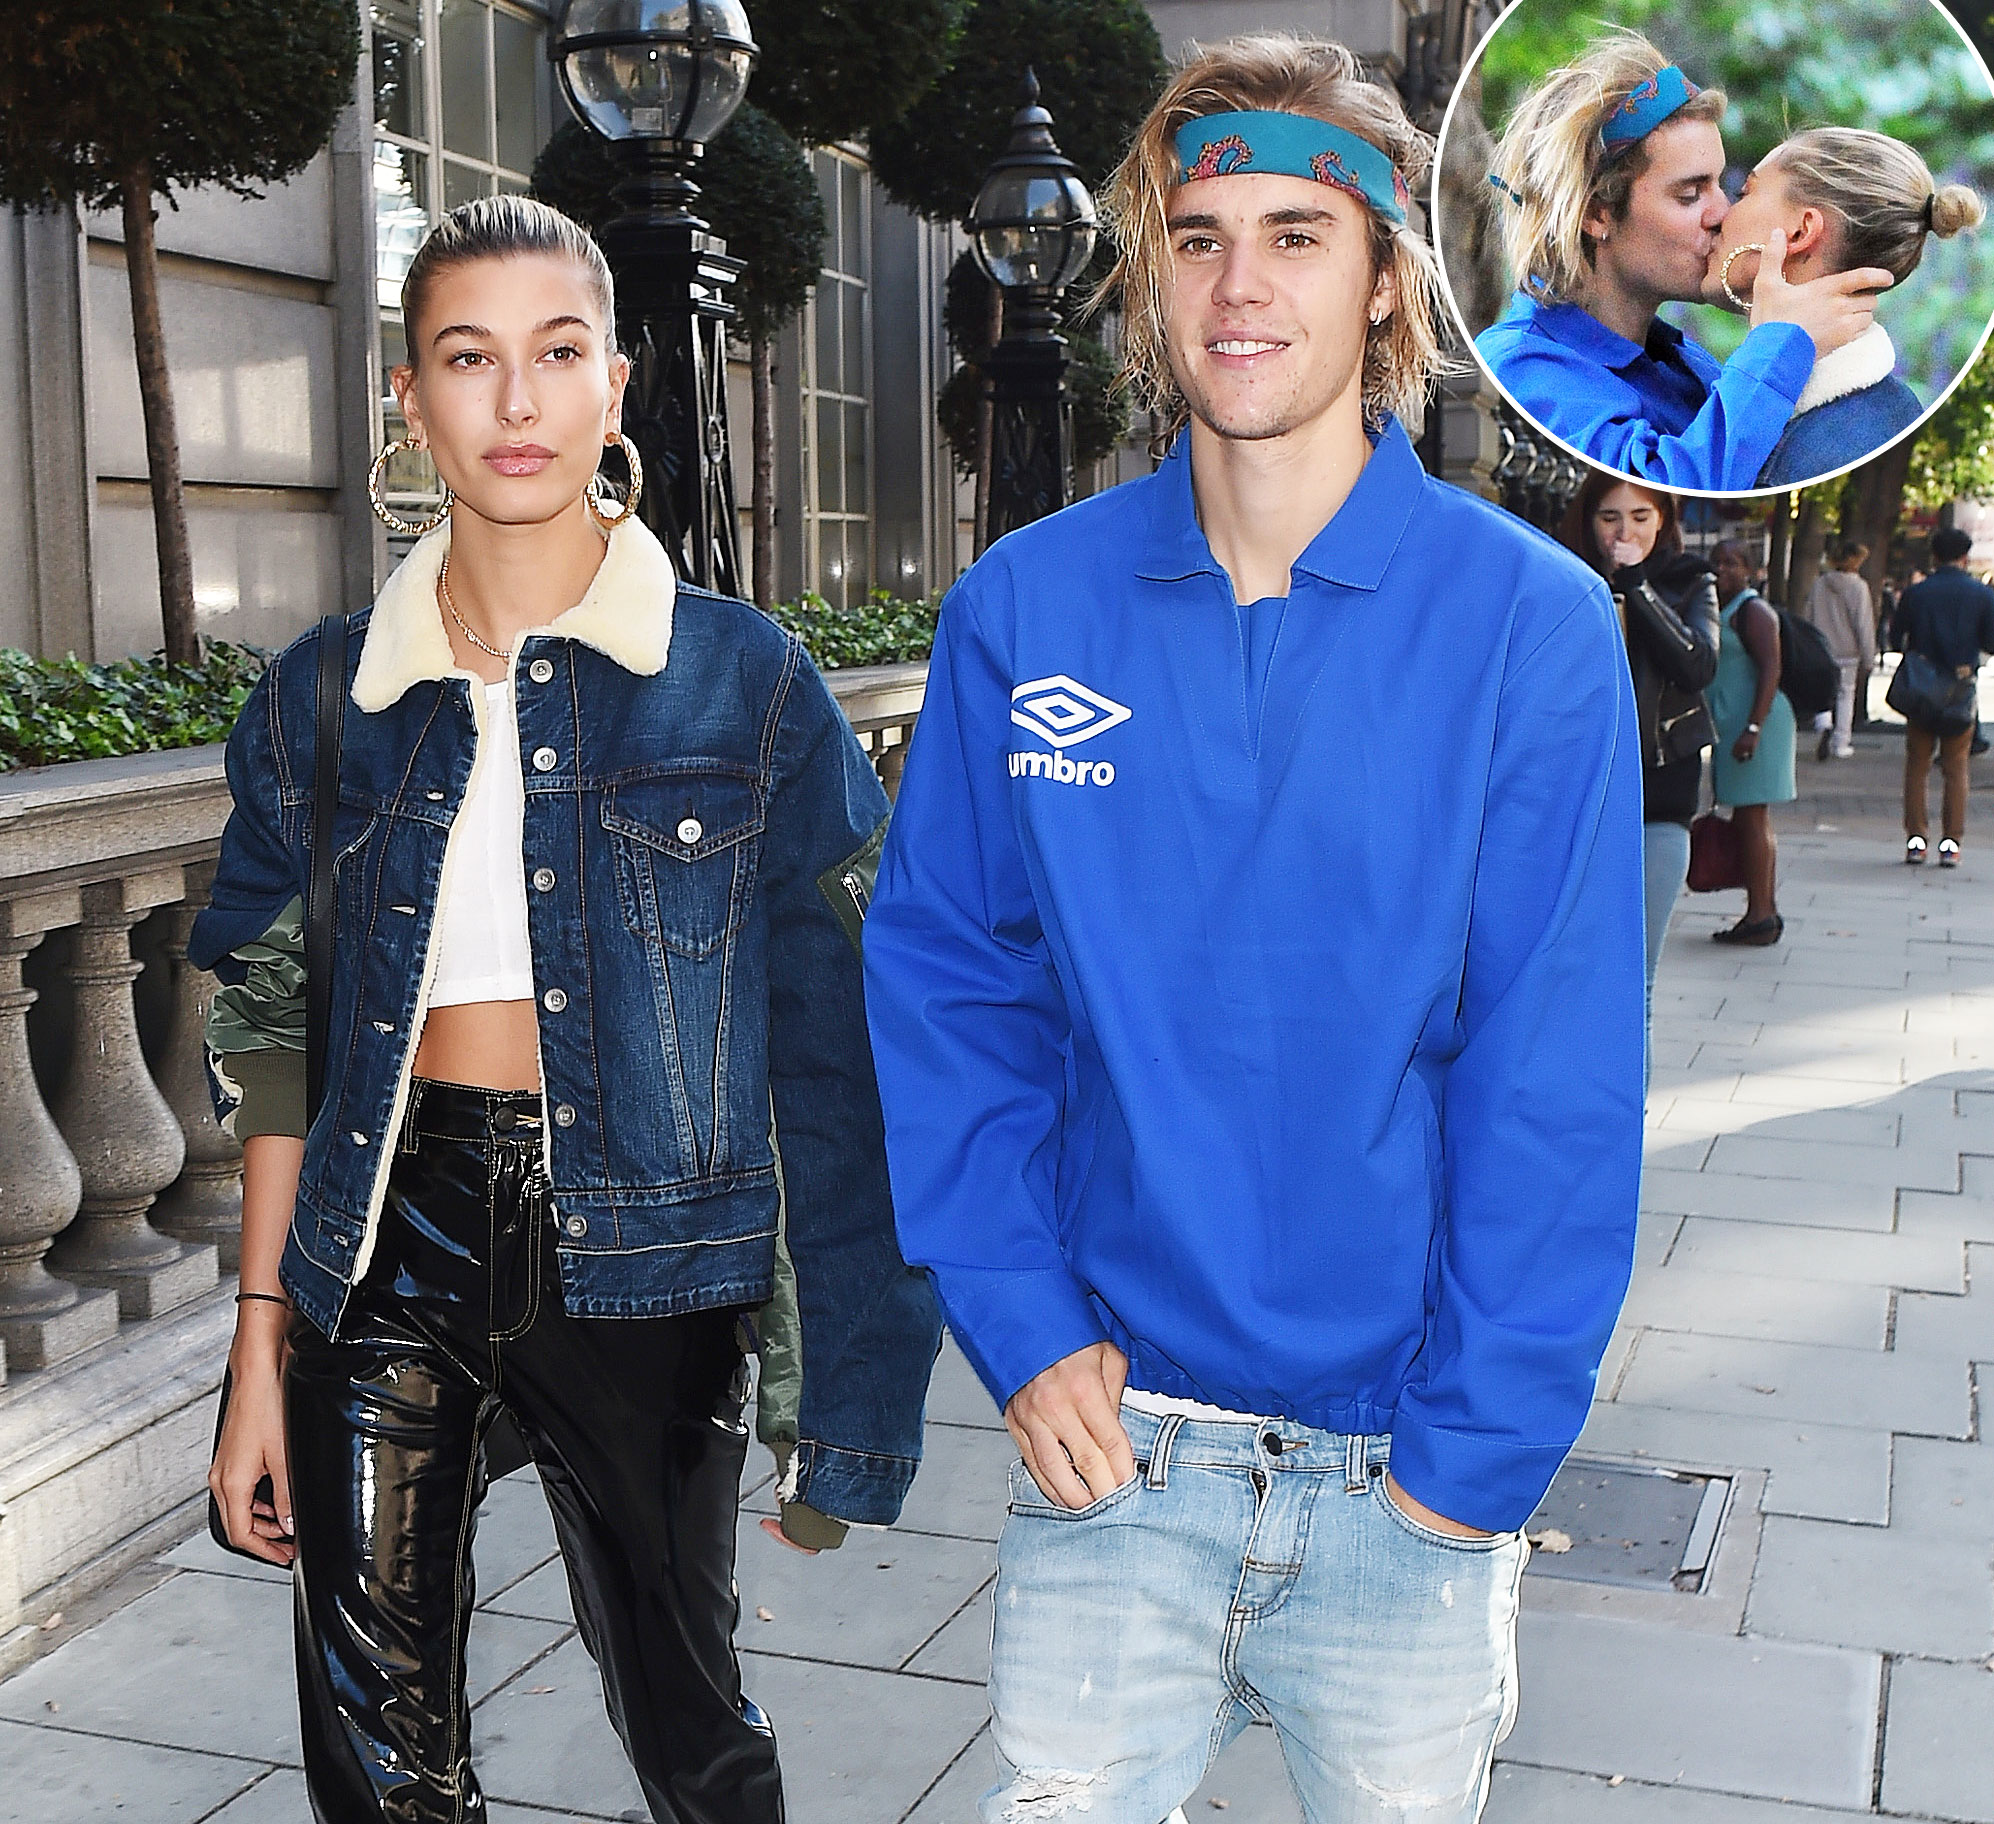 Justin Bieber Through The Years Hailey Baldwin Marriage - In June 2018, Bieber started hooking up with Baldwin, whom he previously dated from 2015 to 2016. He proposed to the model during a trip to the Bahamas in July, and they quietly married at a New York City courthouse in September.